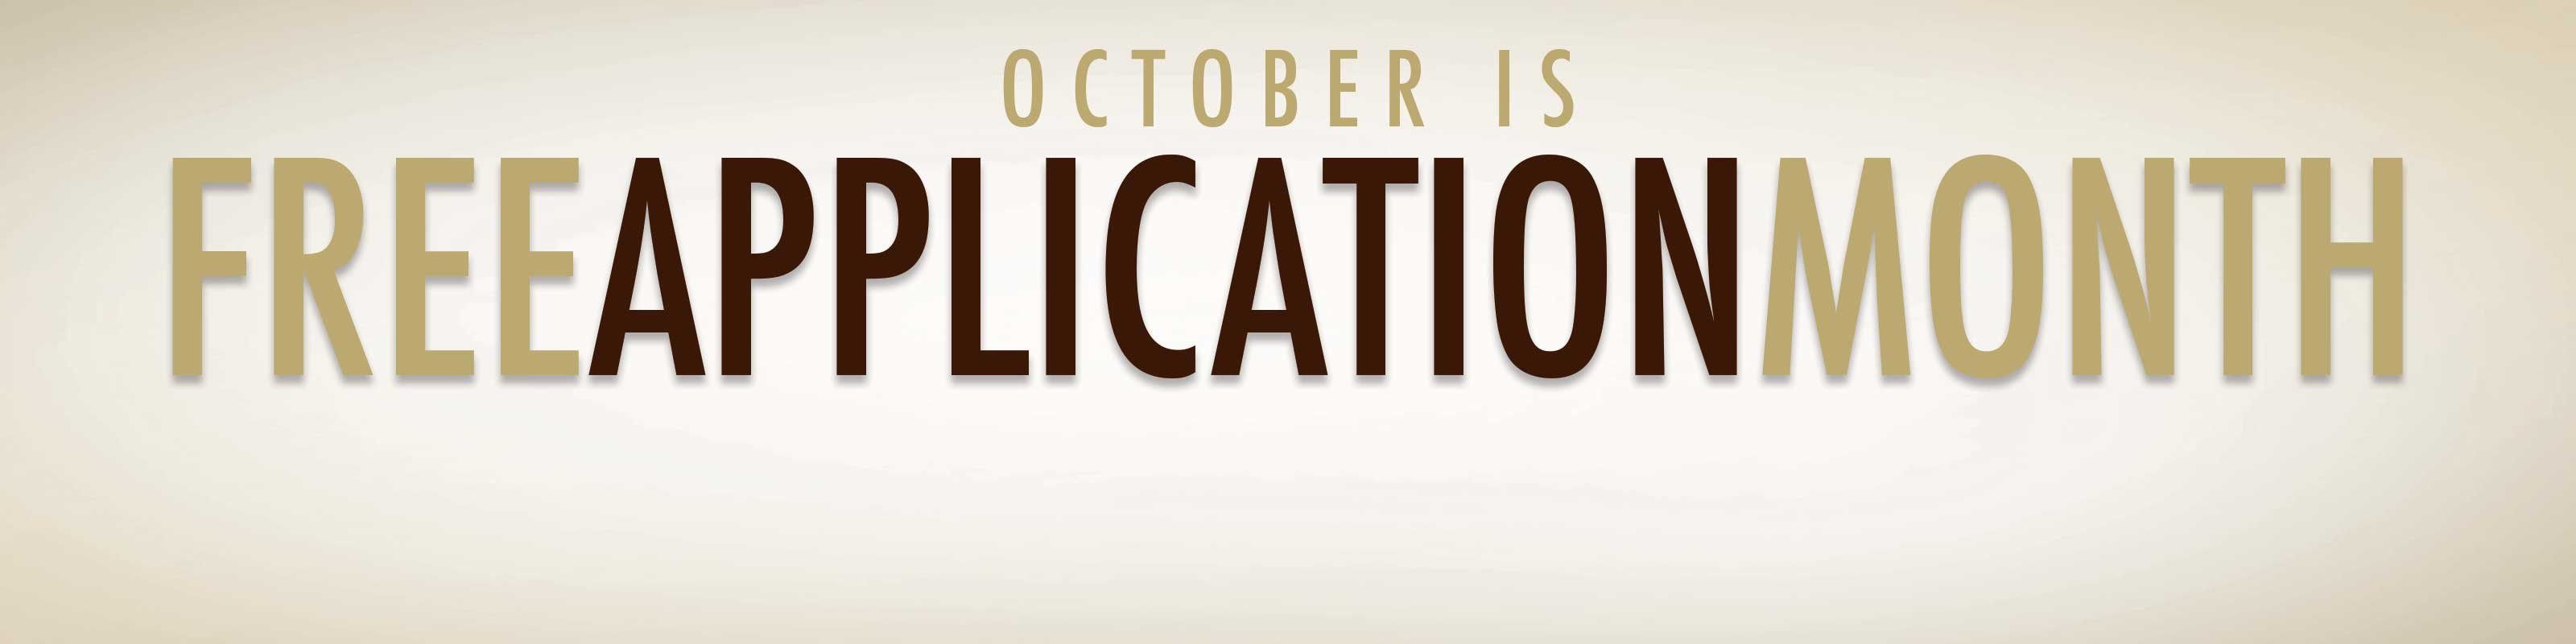 FREE APPLICATION MONTH